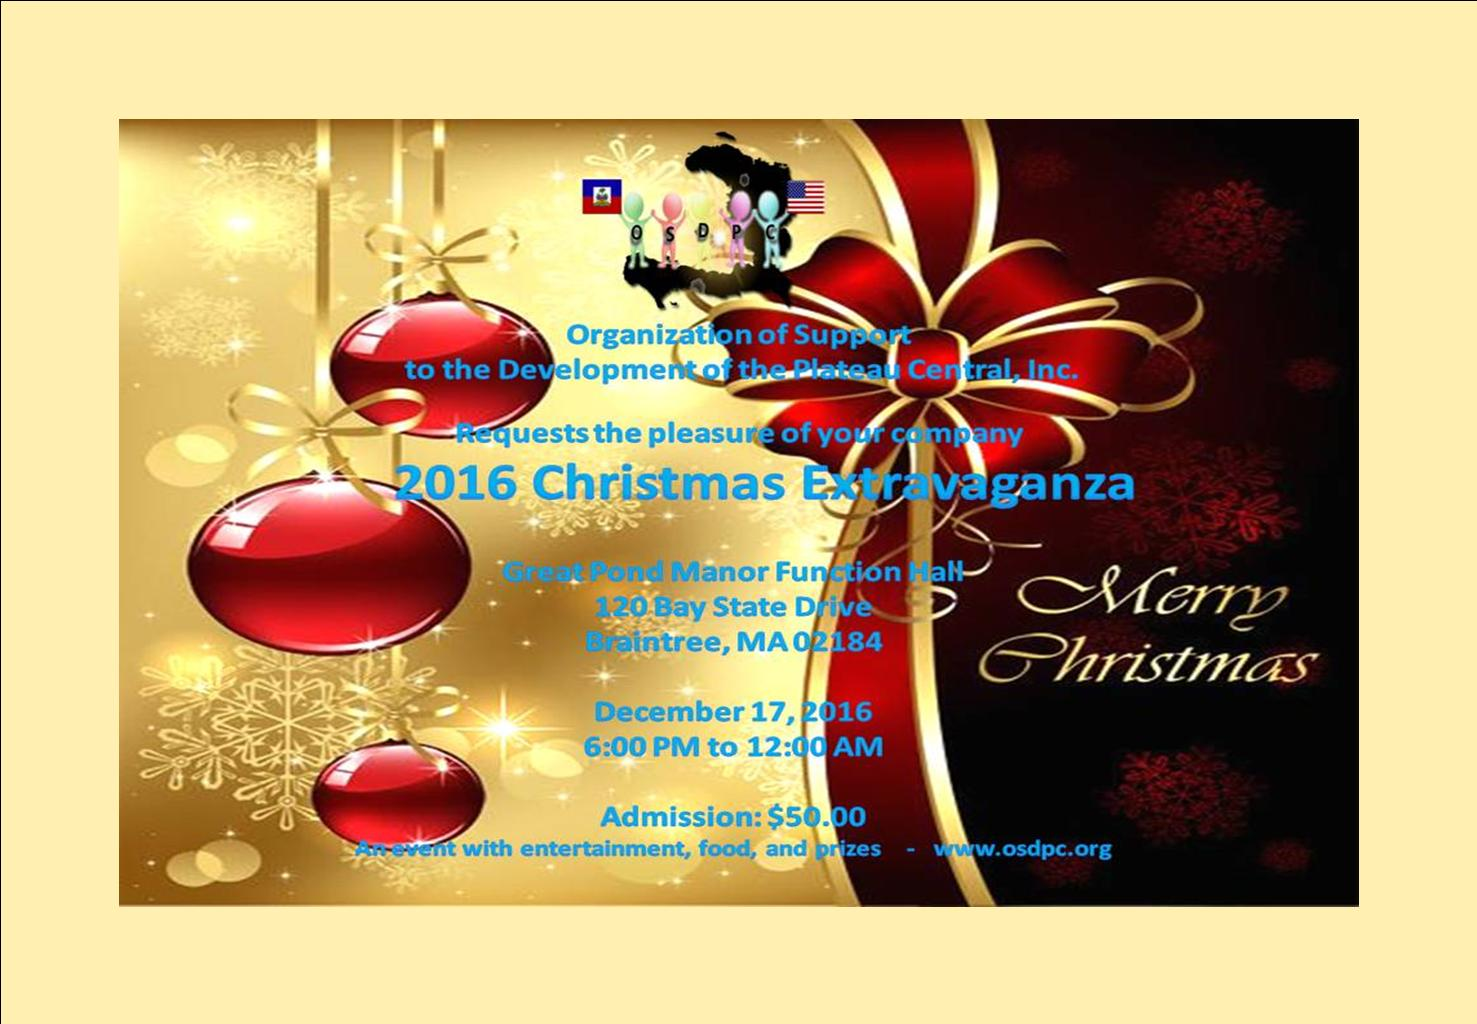 2016-christmas-extravaganza-invitation-card-file-pdf